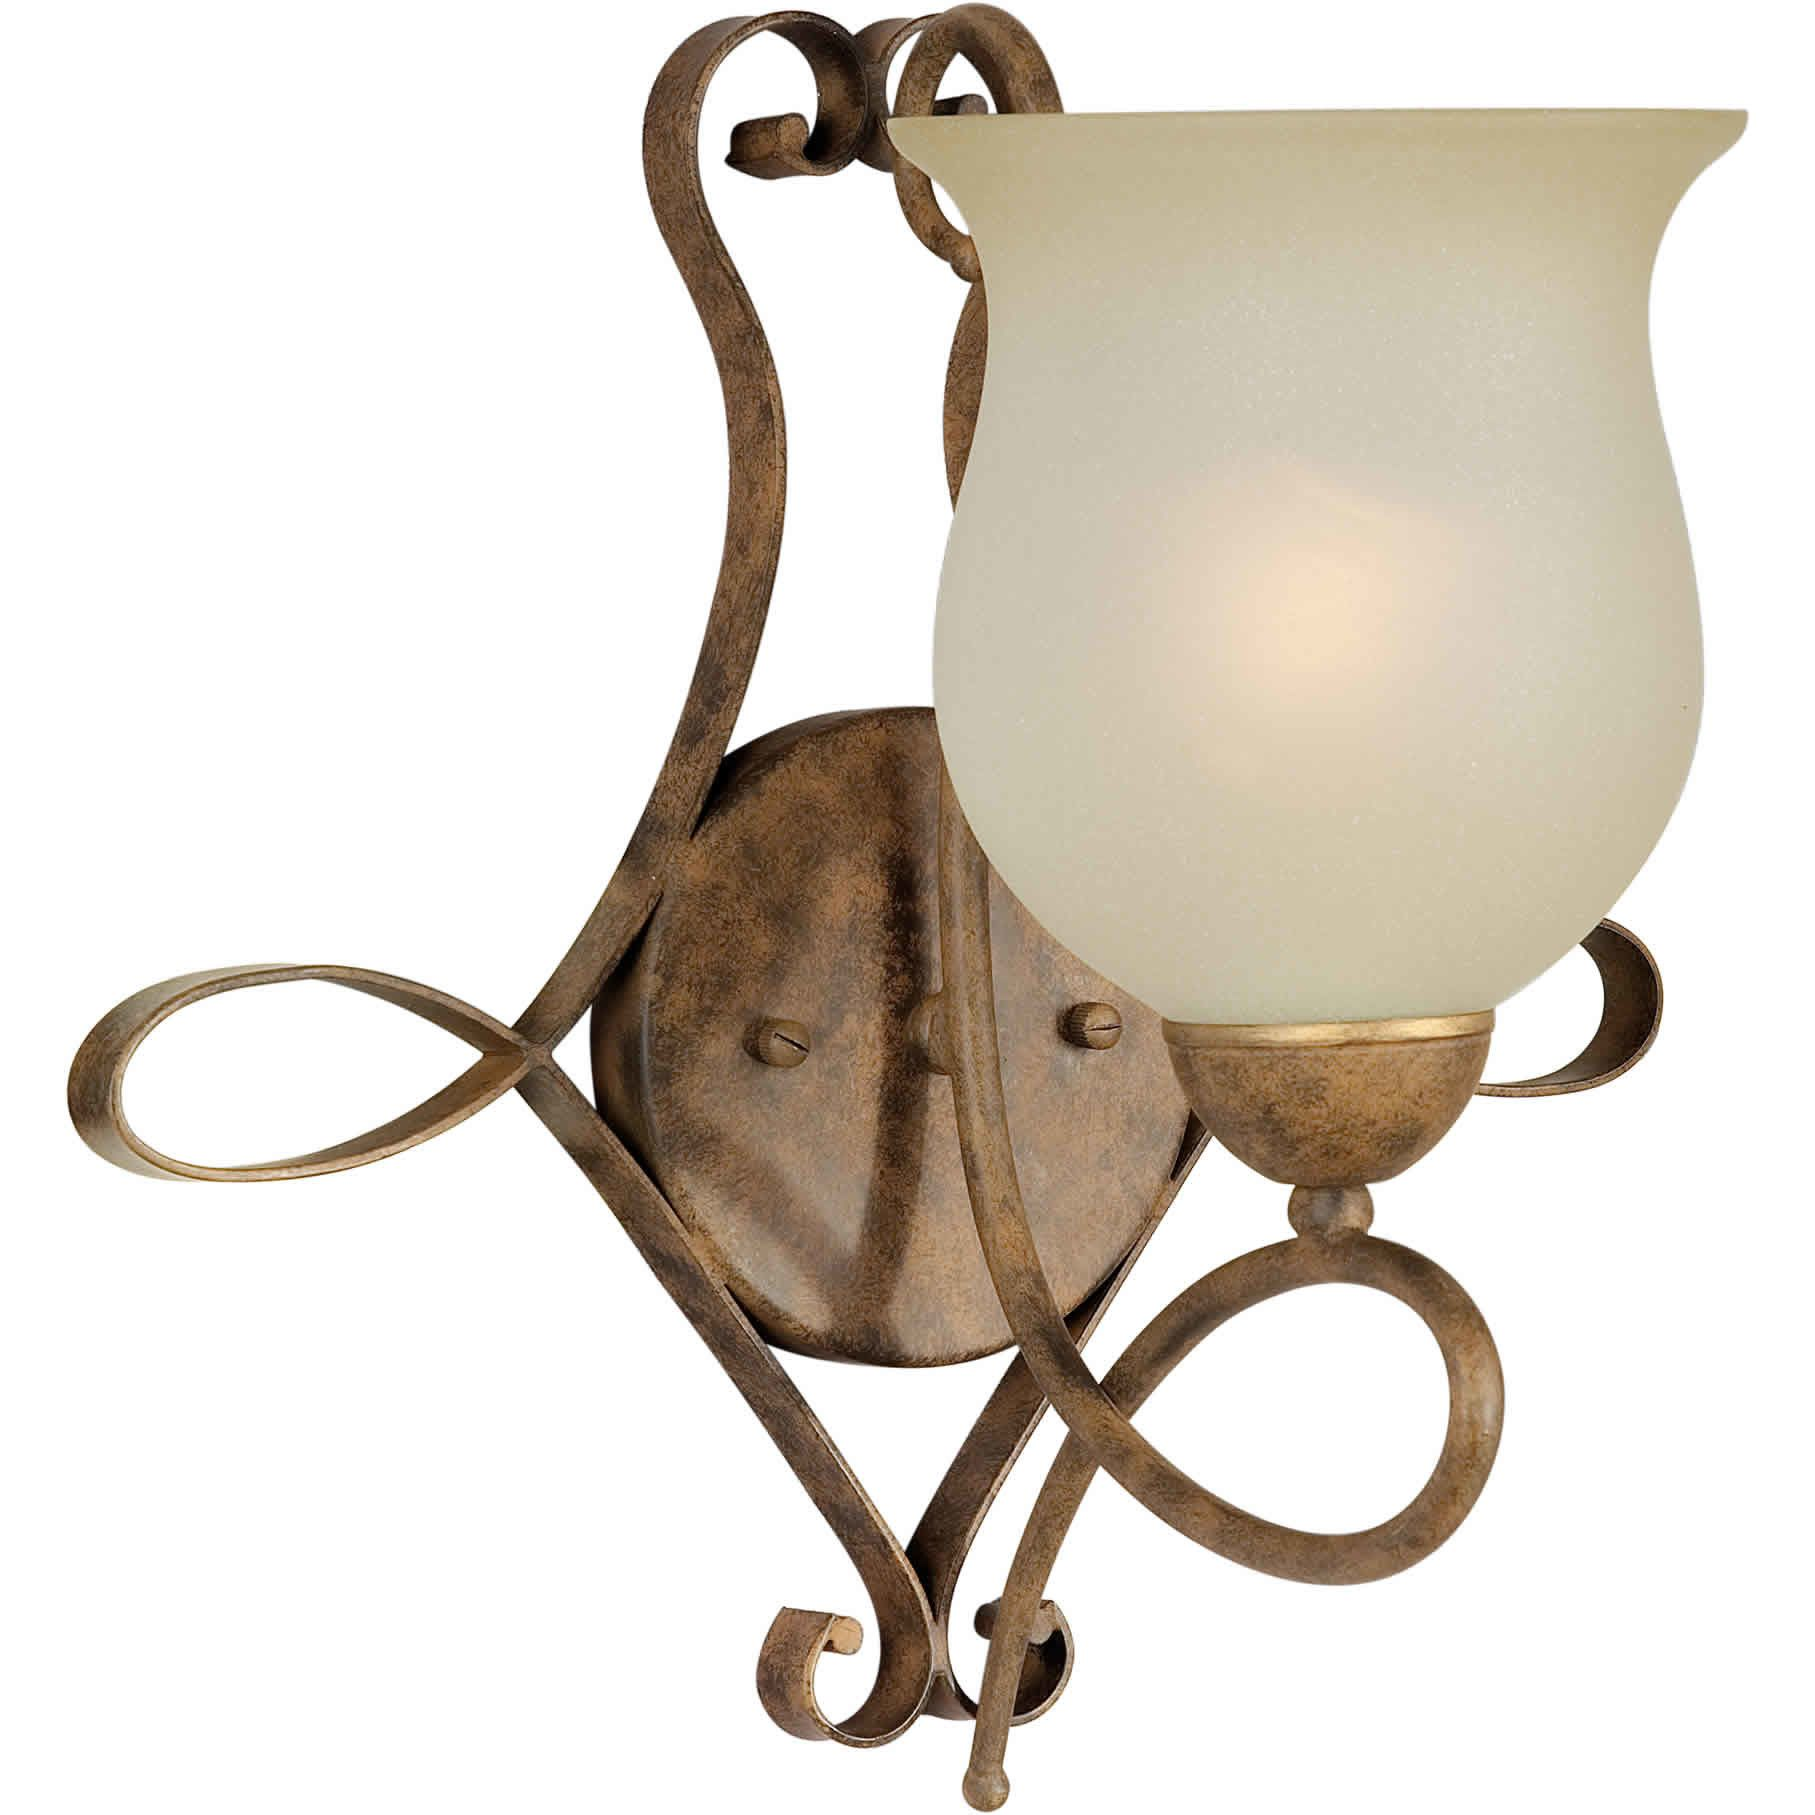 Forte Lighting 1 Light Wall Sconce Wall sconces, Sconces